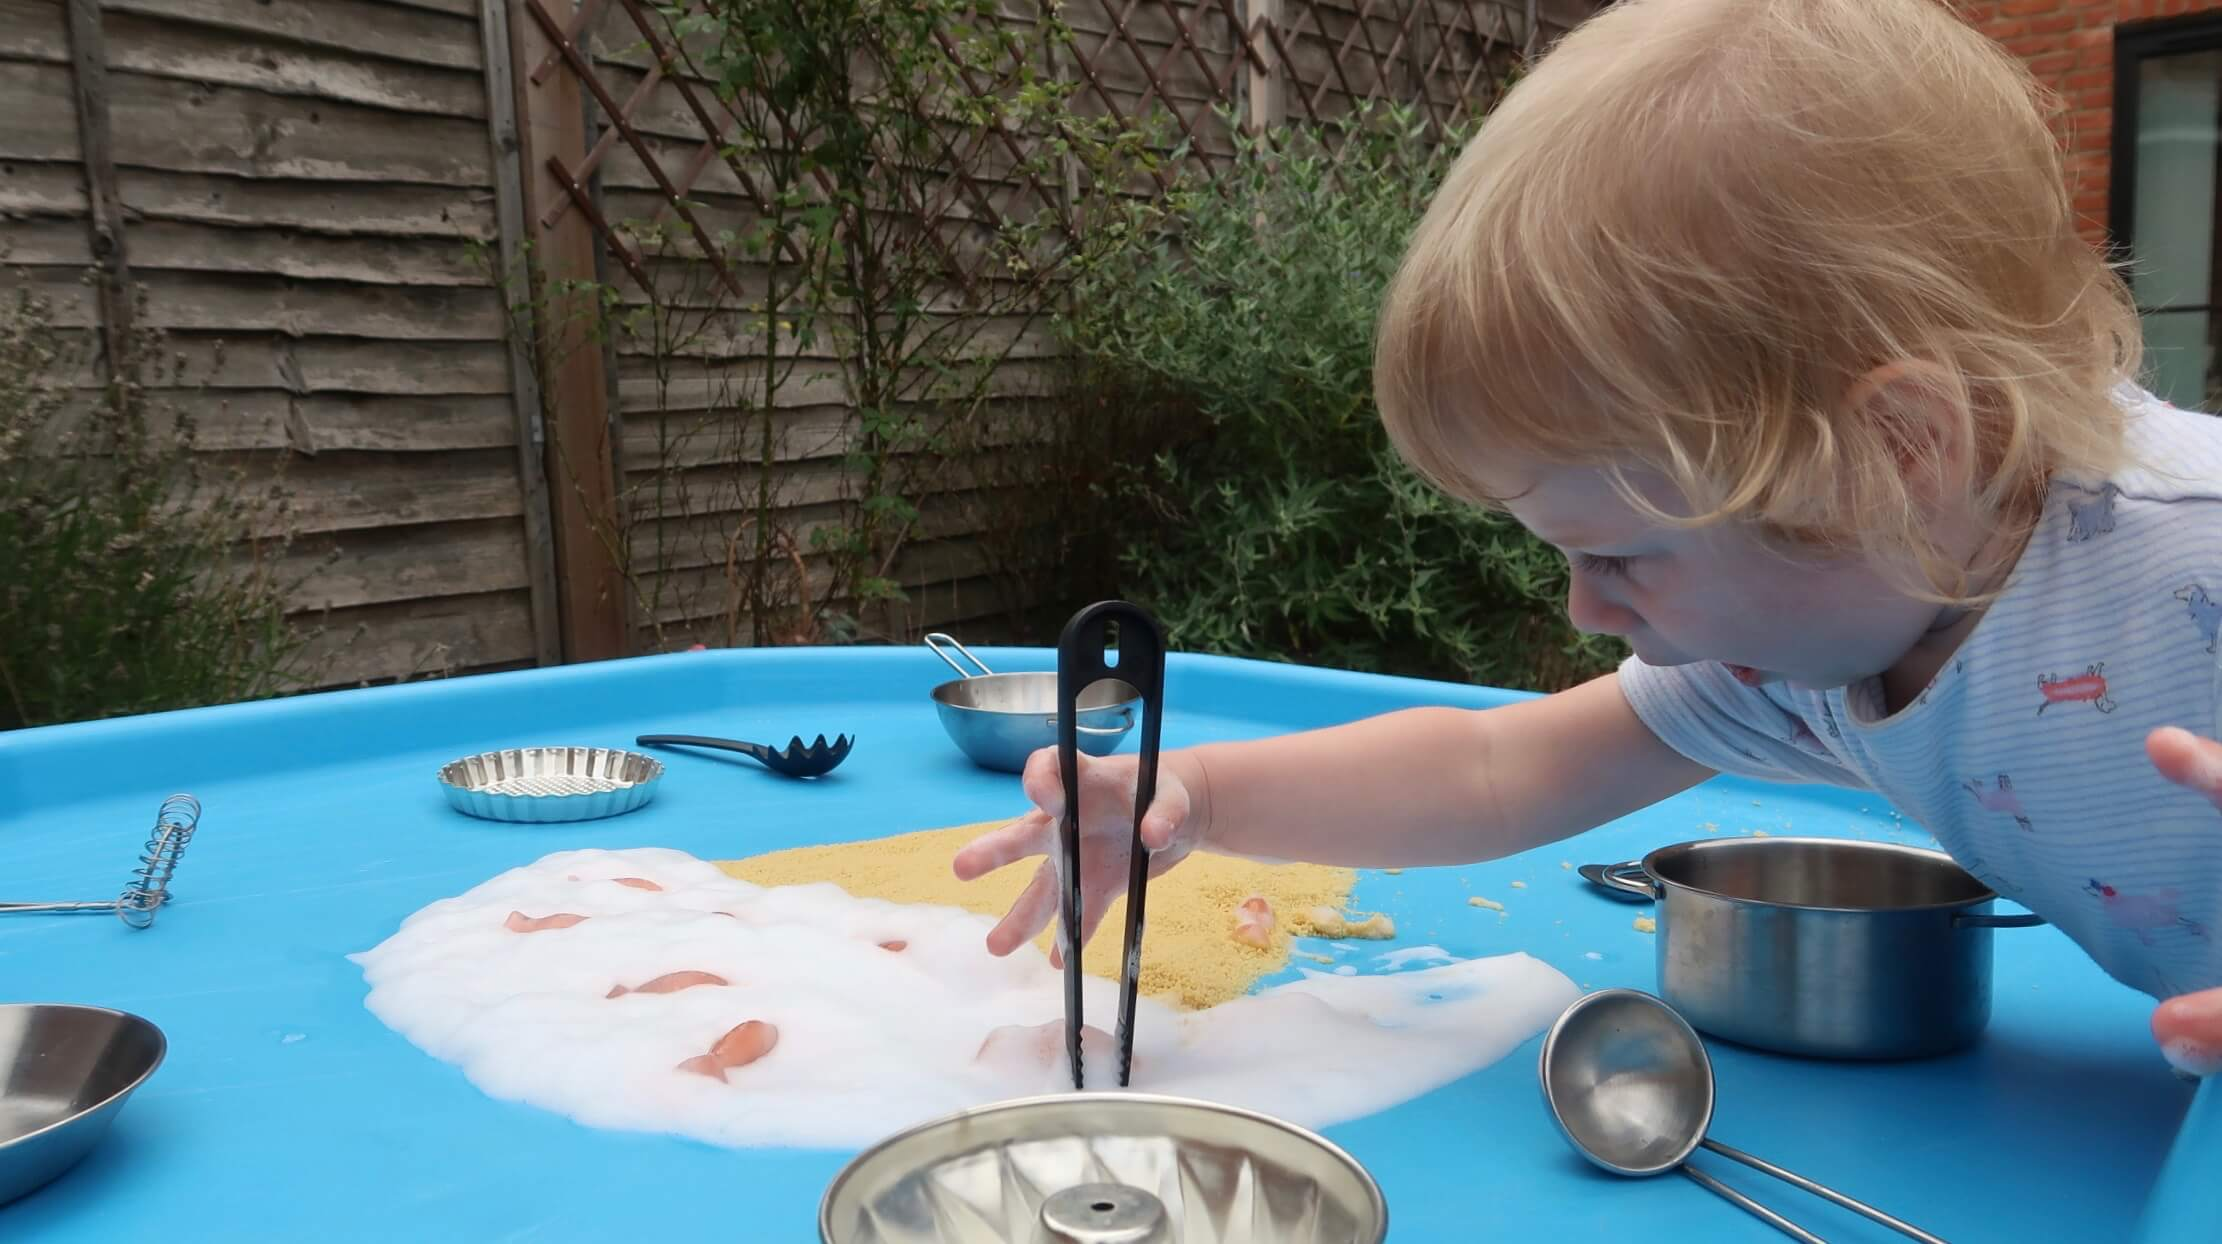 Developing fine motor skills in EYFS children.